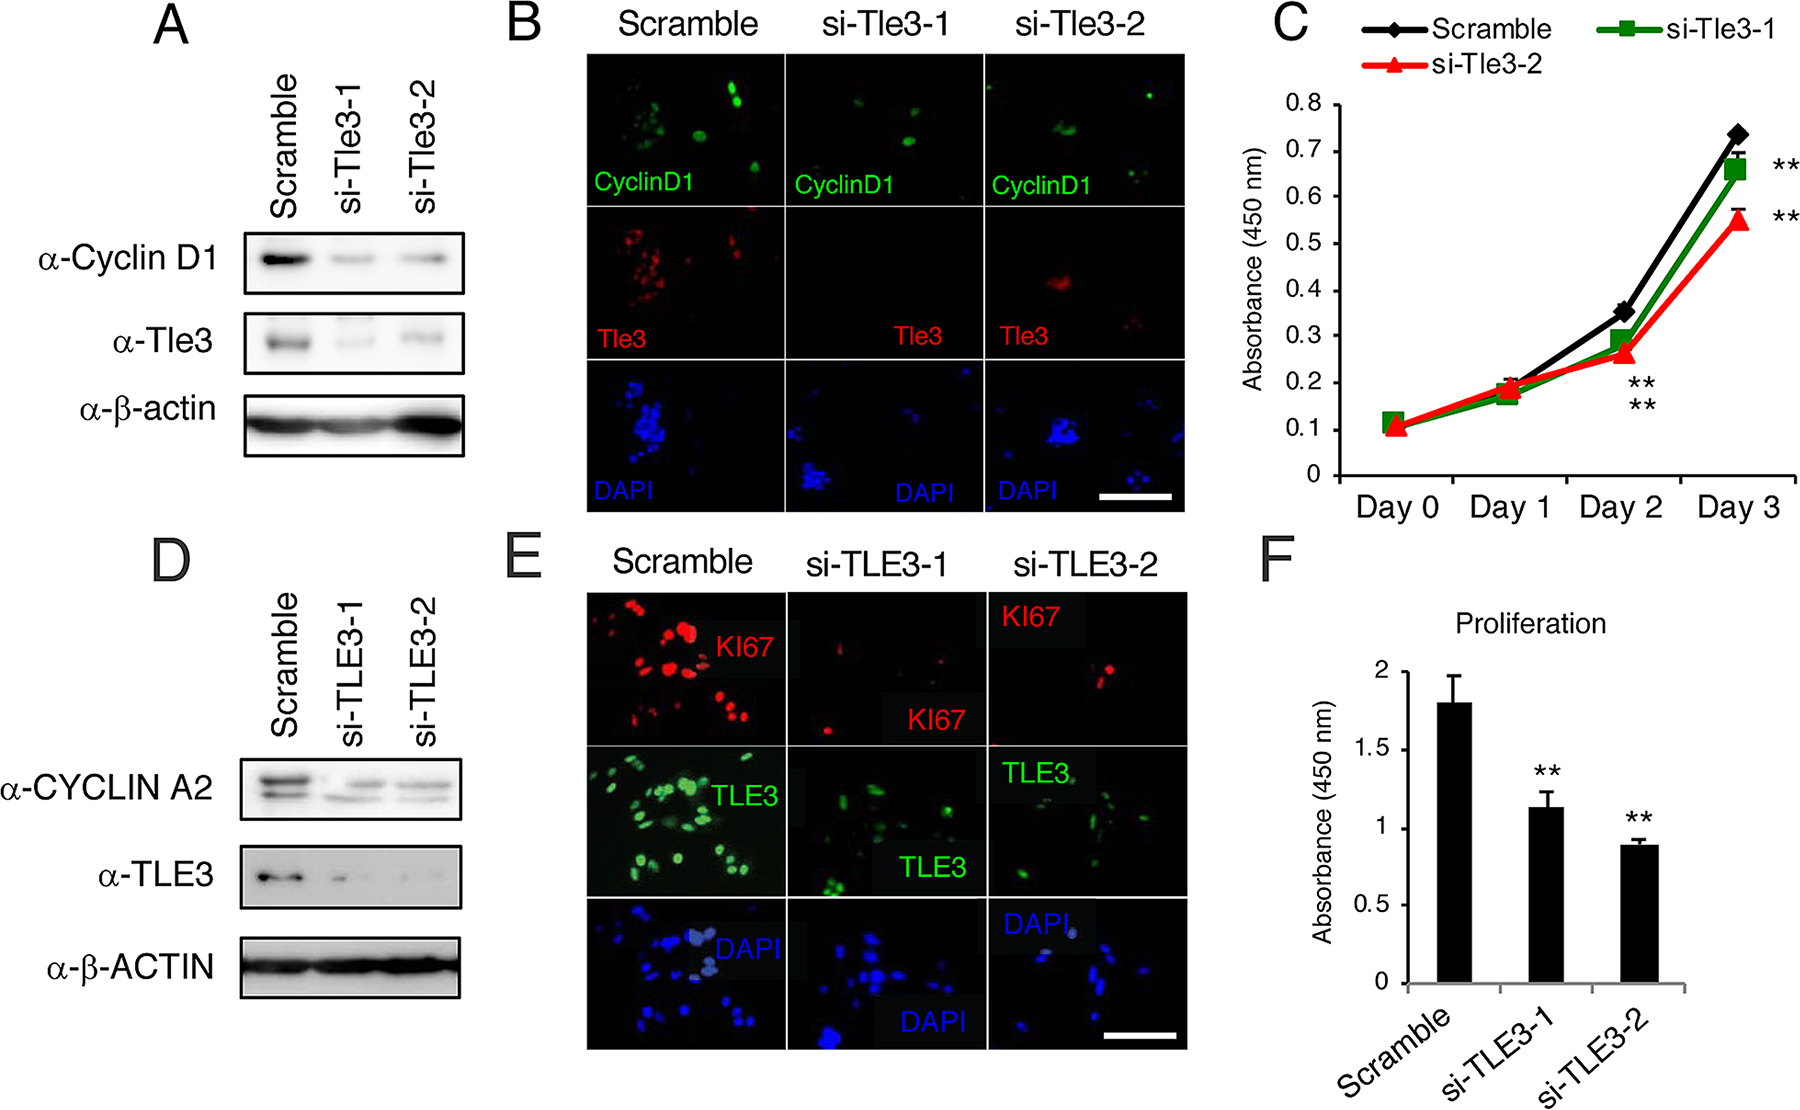 Knockdown of Tle3 (TLE3) in melanoma cells decreases proliferation.